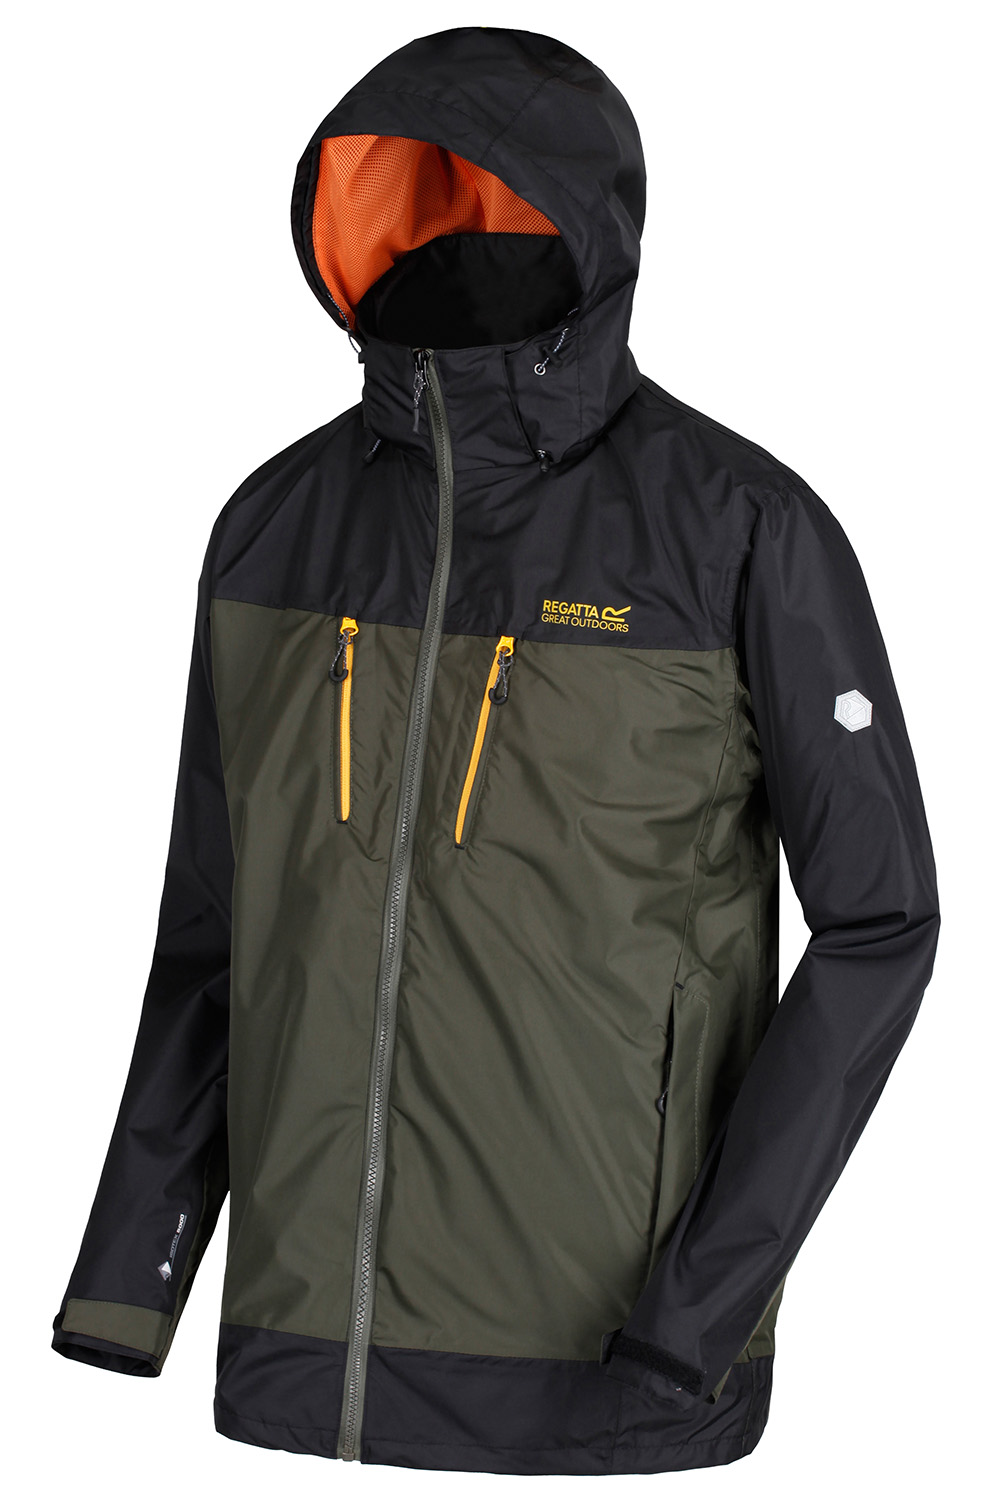 Regatta-Mens-Calderdale-II-Jacket-Waterproof-Breathable-Isotex-5000-Hooded-Coat thumbnail 24